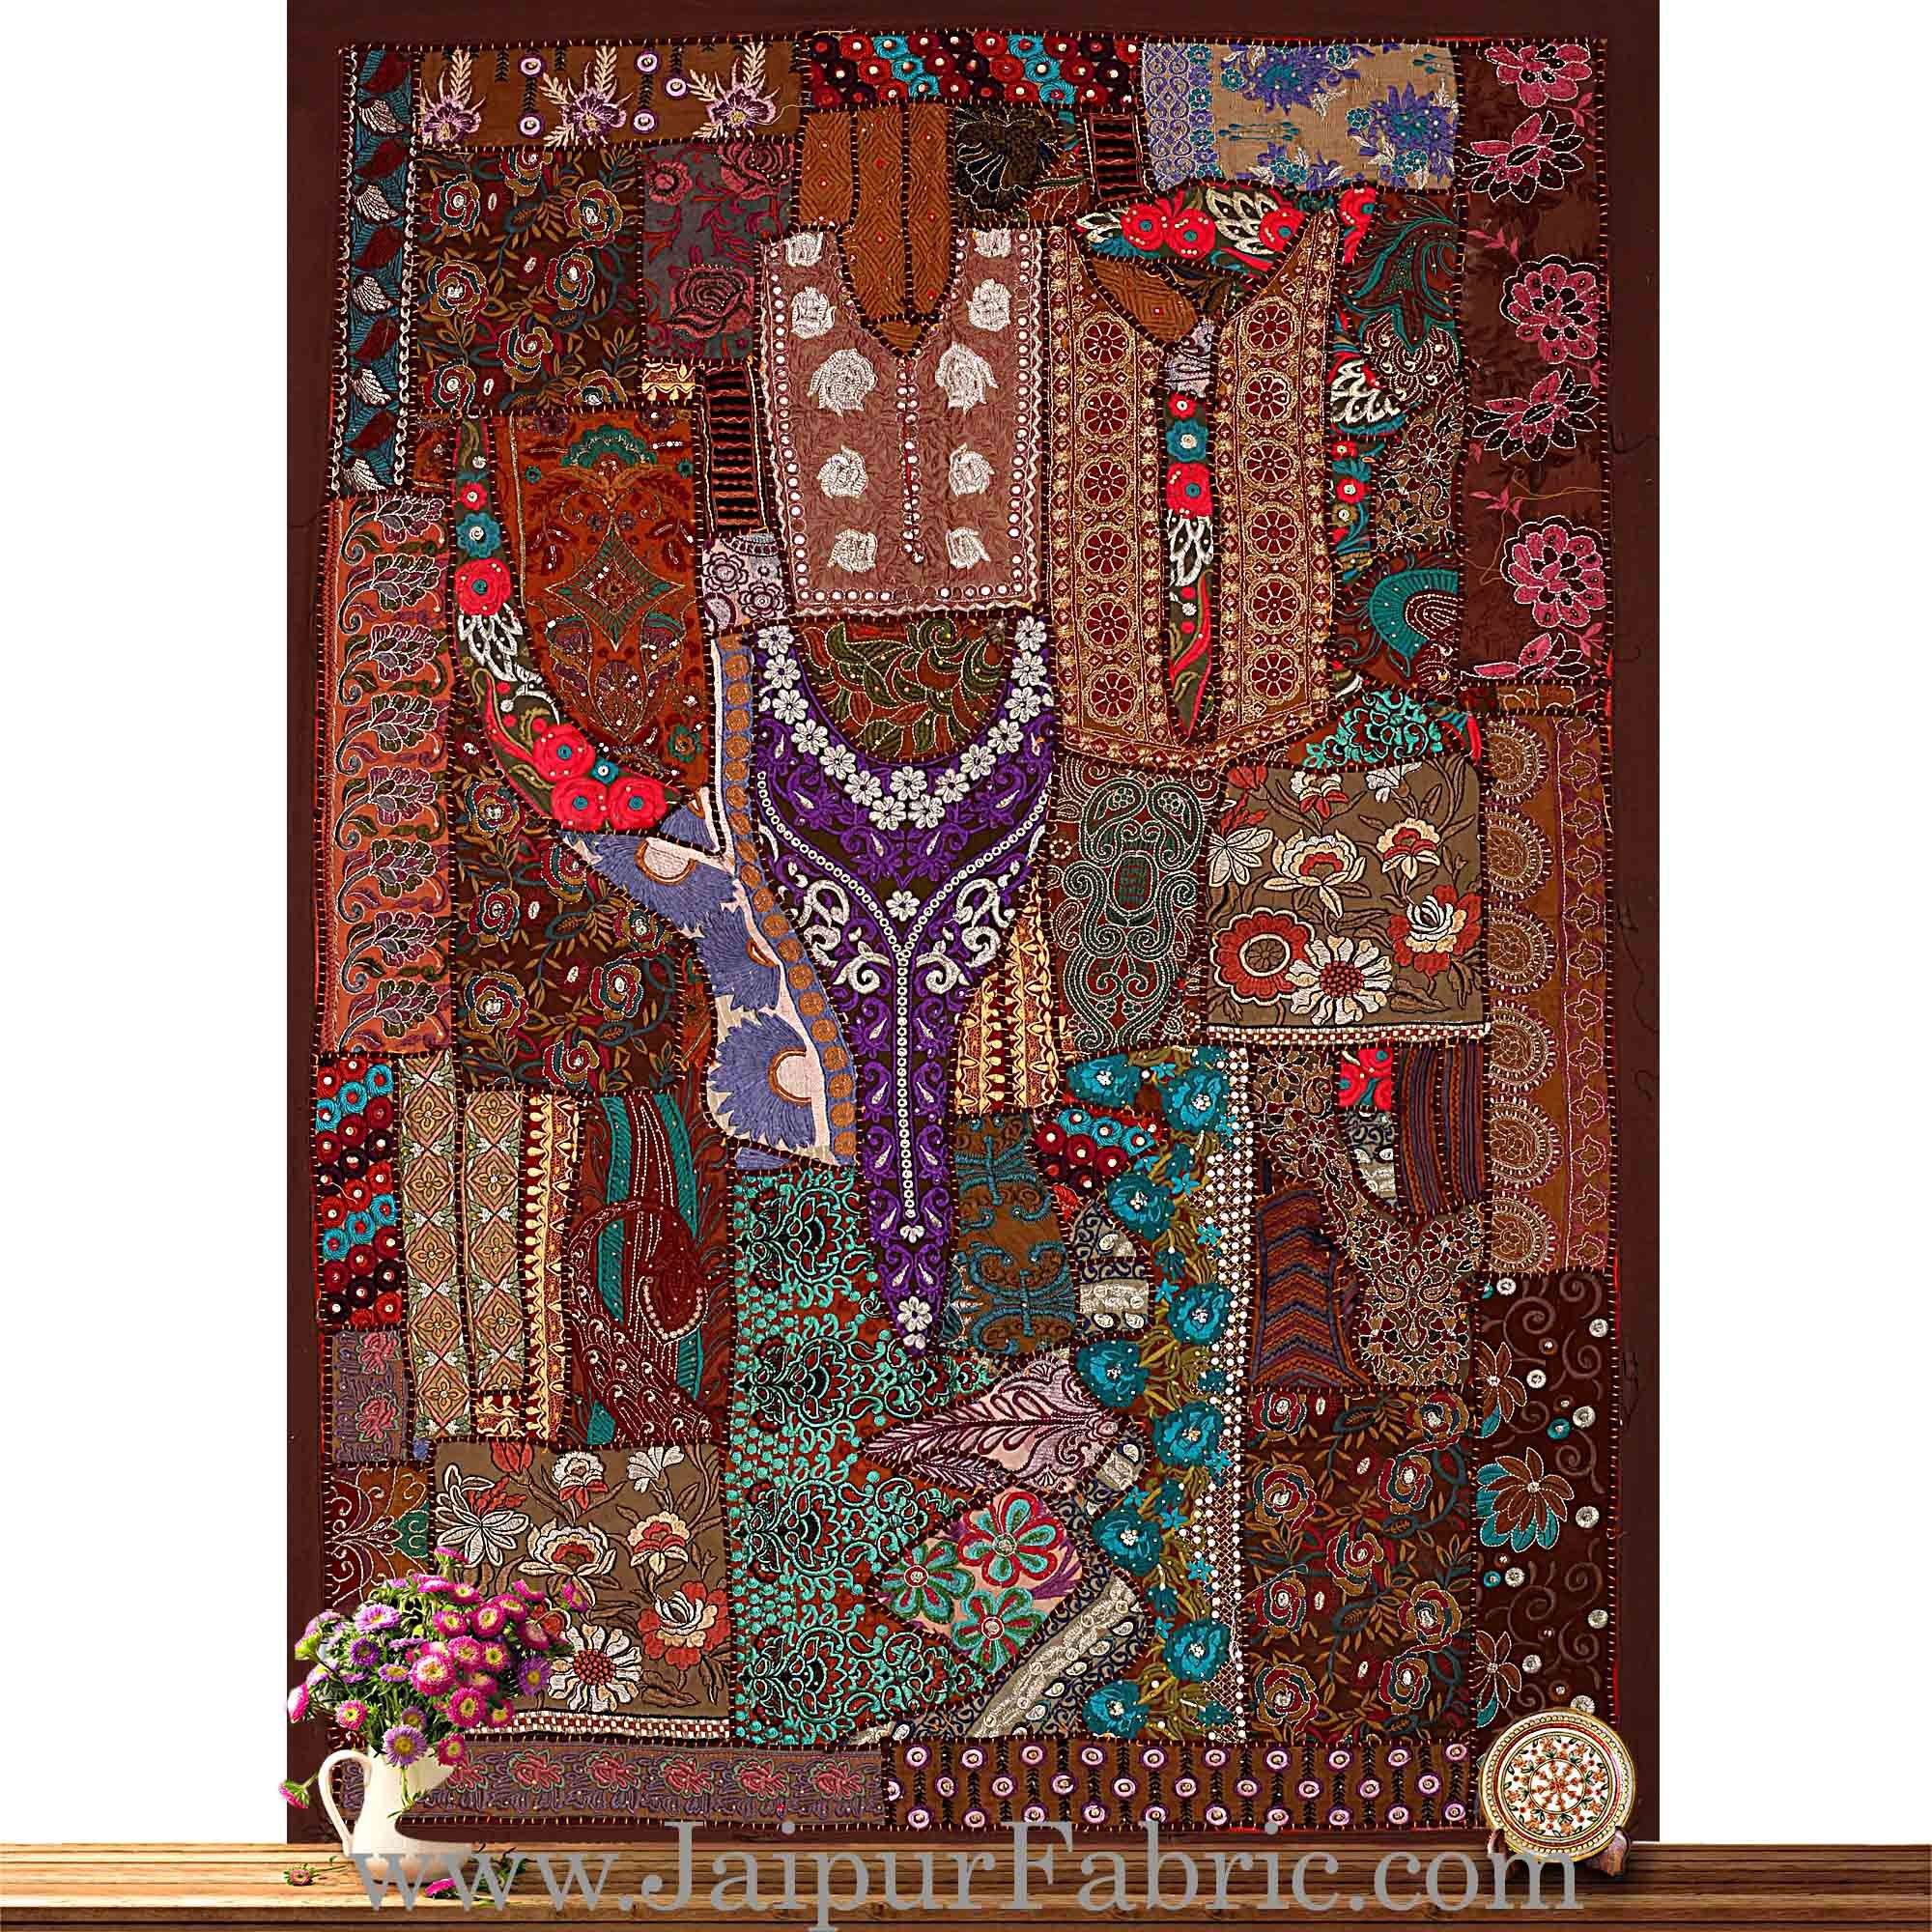 Wall Hanging Embroidered patchwork Unique Designs